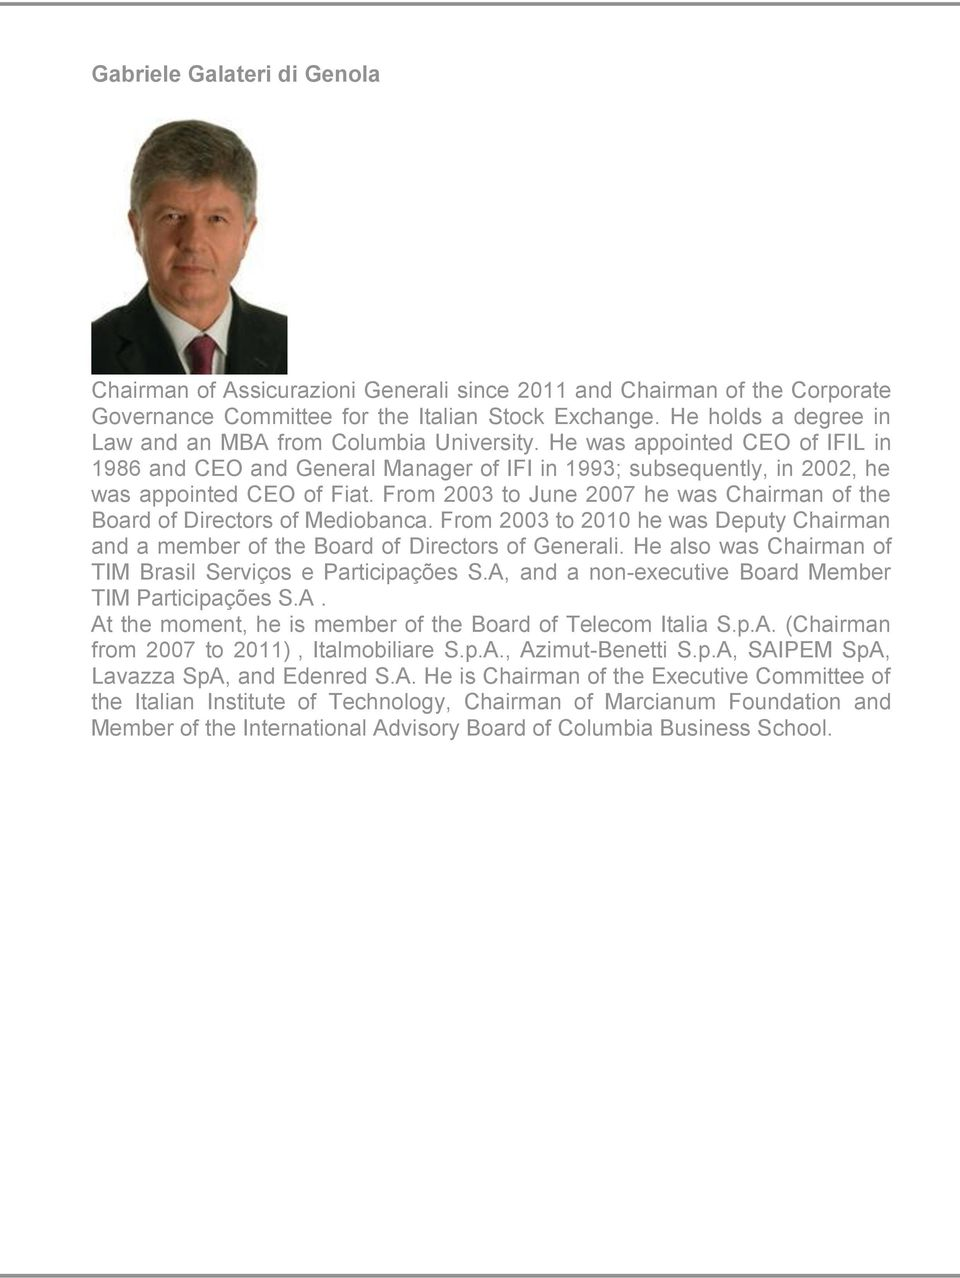 From 2003 to June 2007 he was Chairman of the Board of Directors of Mediobanca. From 2003 to 2010 he was Deputy Chairman and a member of the Board of Directors of Generali.